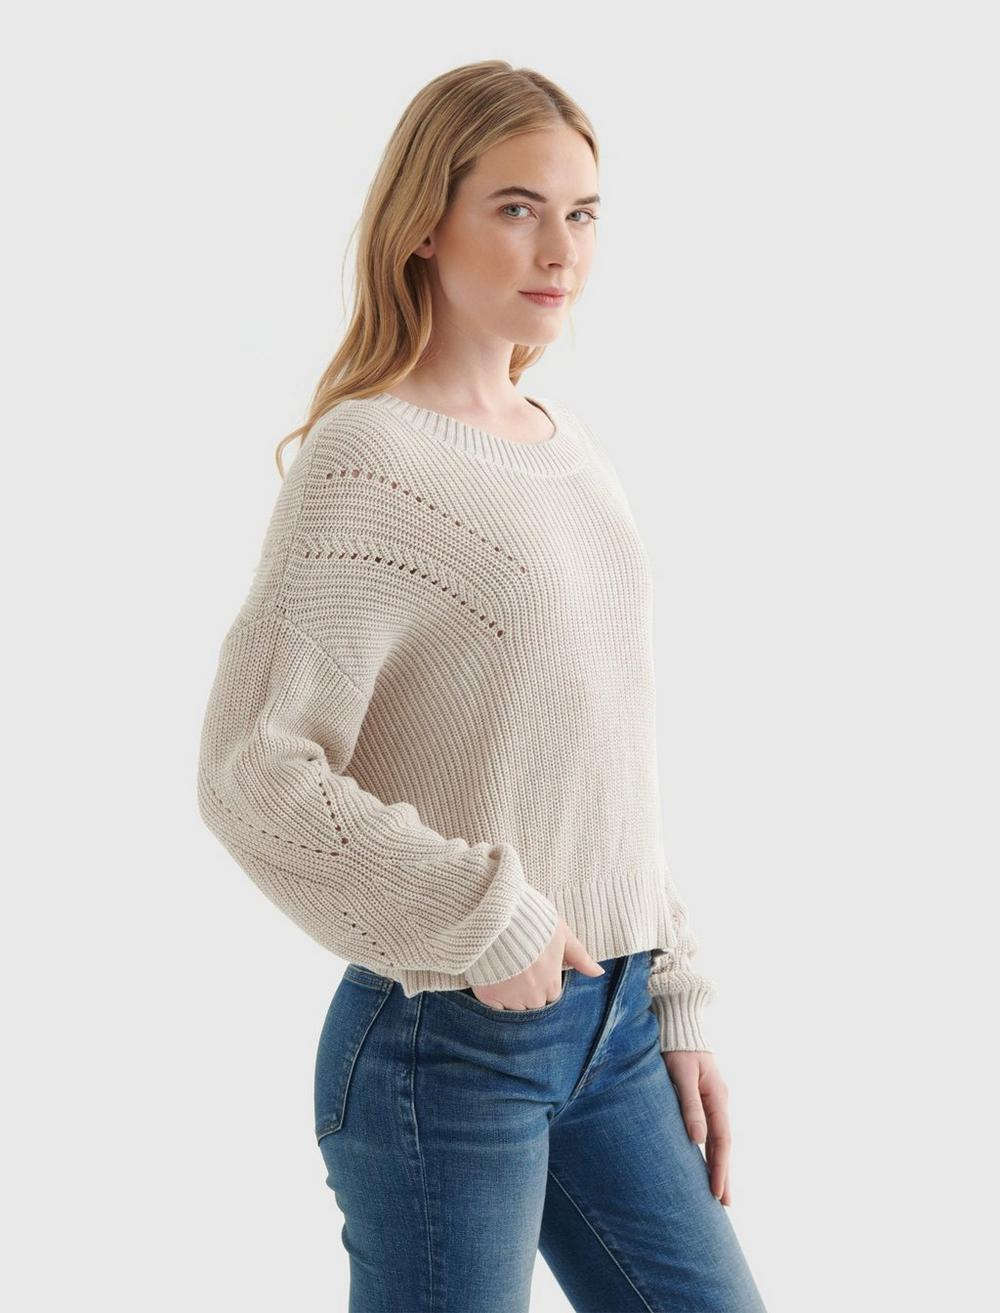 CROPPED RIB-KNIT PULLOVER REVERSIBLE SWEATER, image 3